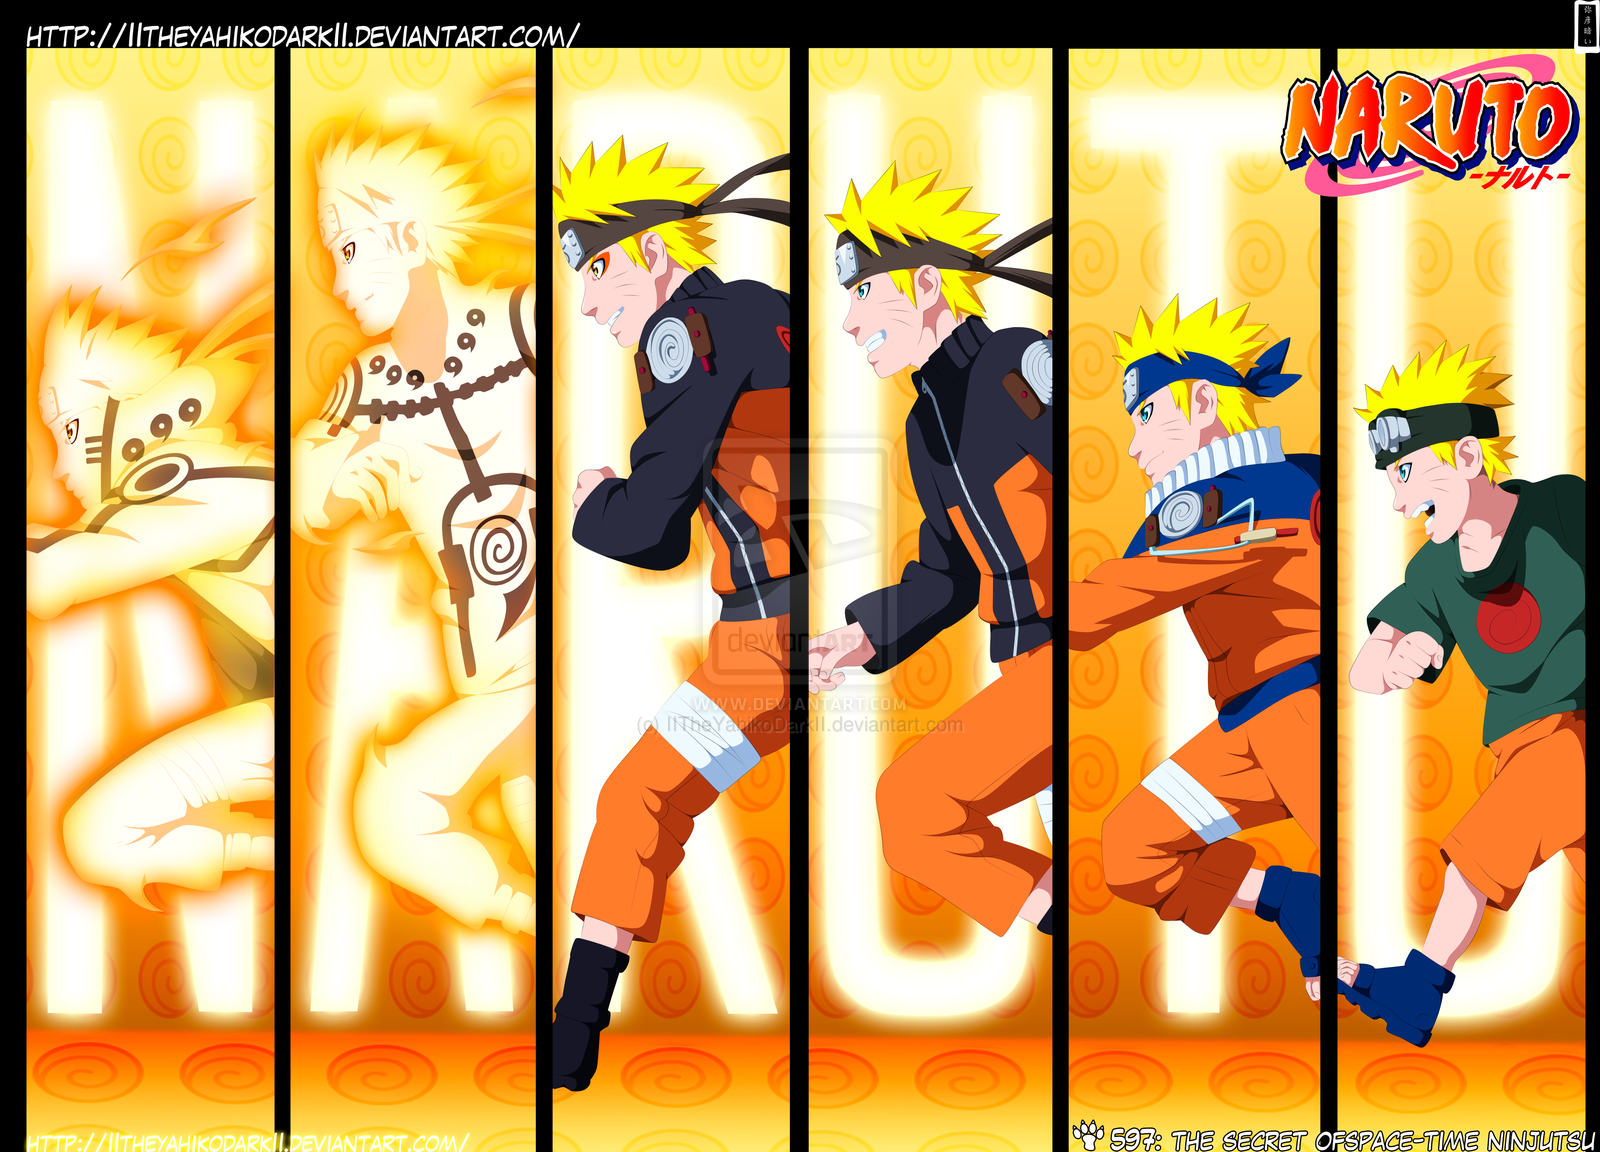 http://images6.fanpop.com/image/photos/33400000/Naruto-evoliution-naruto-33413374-1600-1152.png